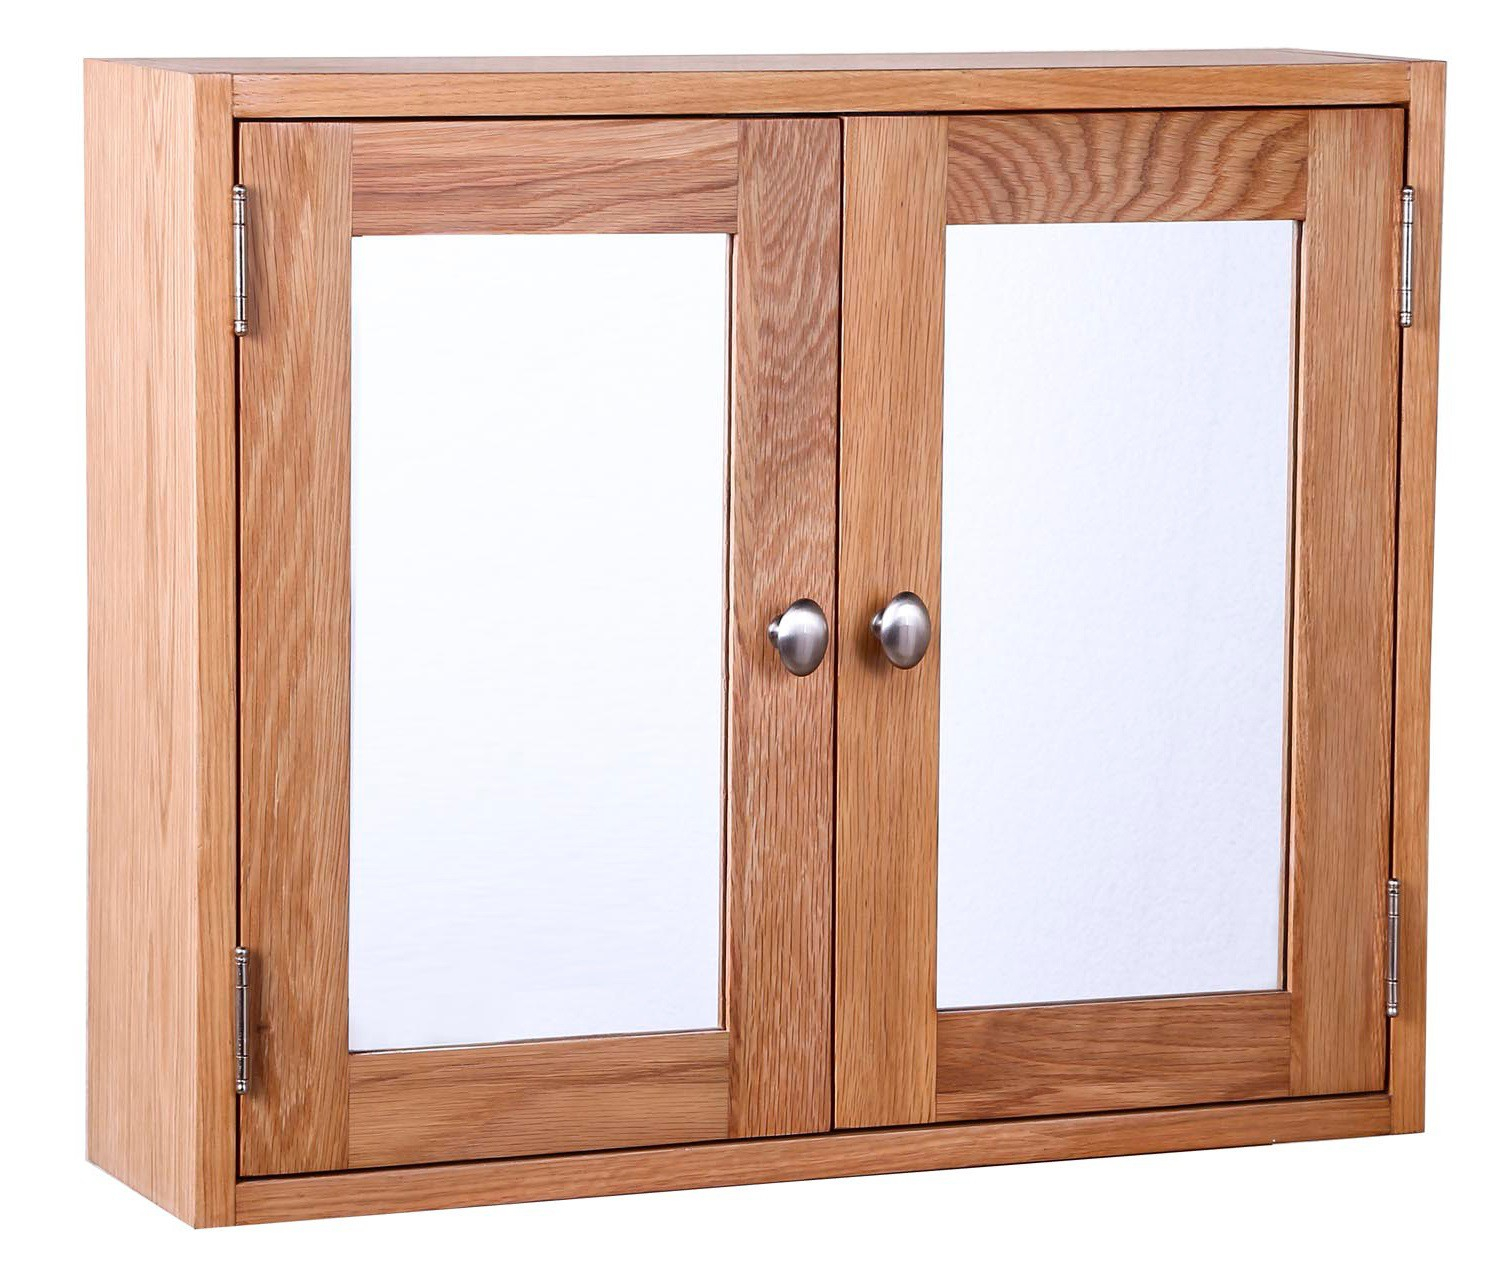 Light Oak Bathroom Storage Cabinet With Mirrors Hallowood pertaining to measurements 1500 X 1272